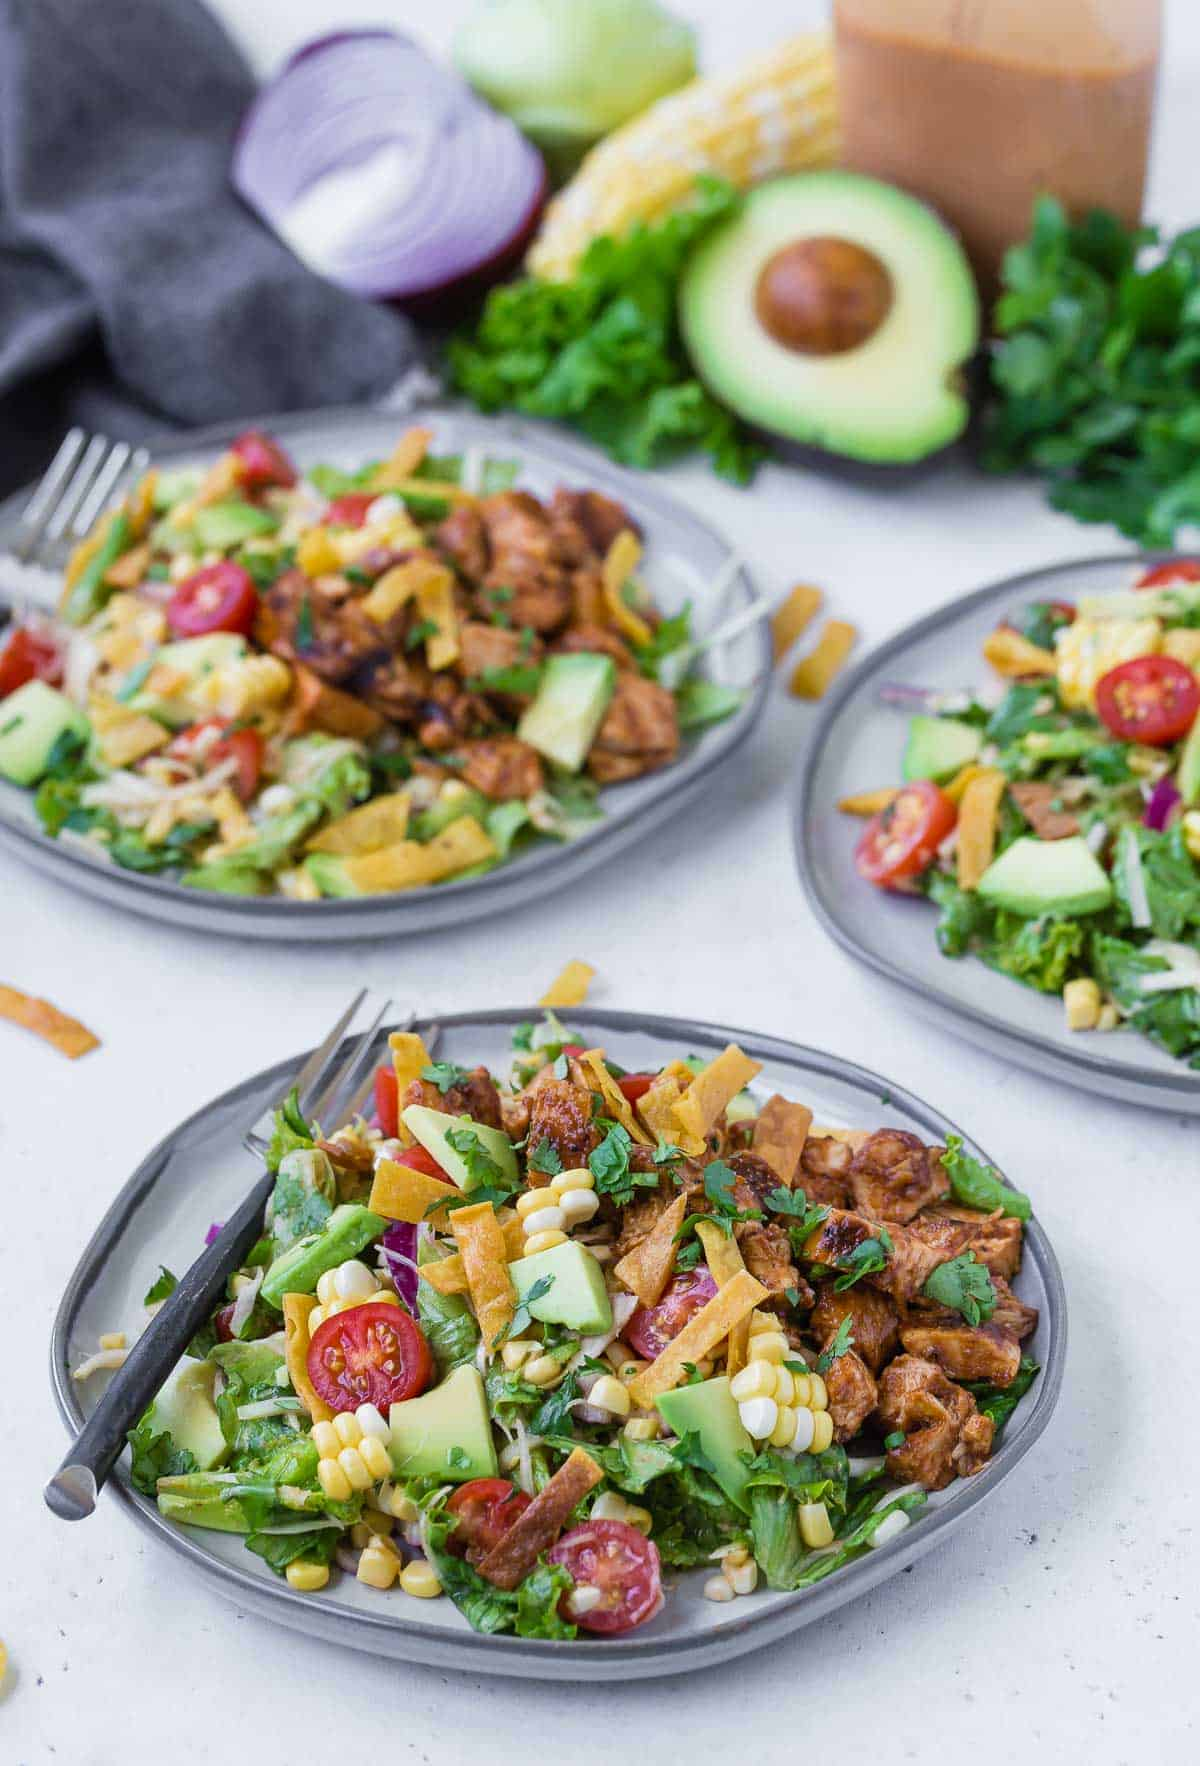 Three plates of a colorful chopped salad on a grey plates. Salad includes bbq grilled chicken, lettuce, onion, tomato, crispy tortilla strips, avocado, corn and more!